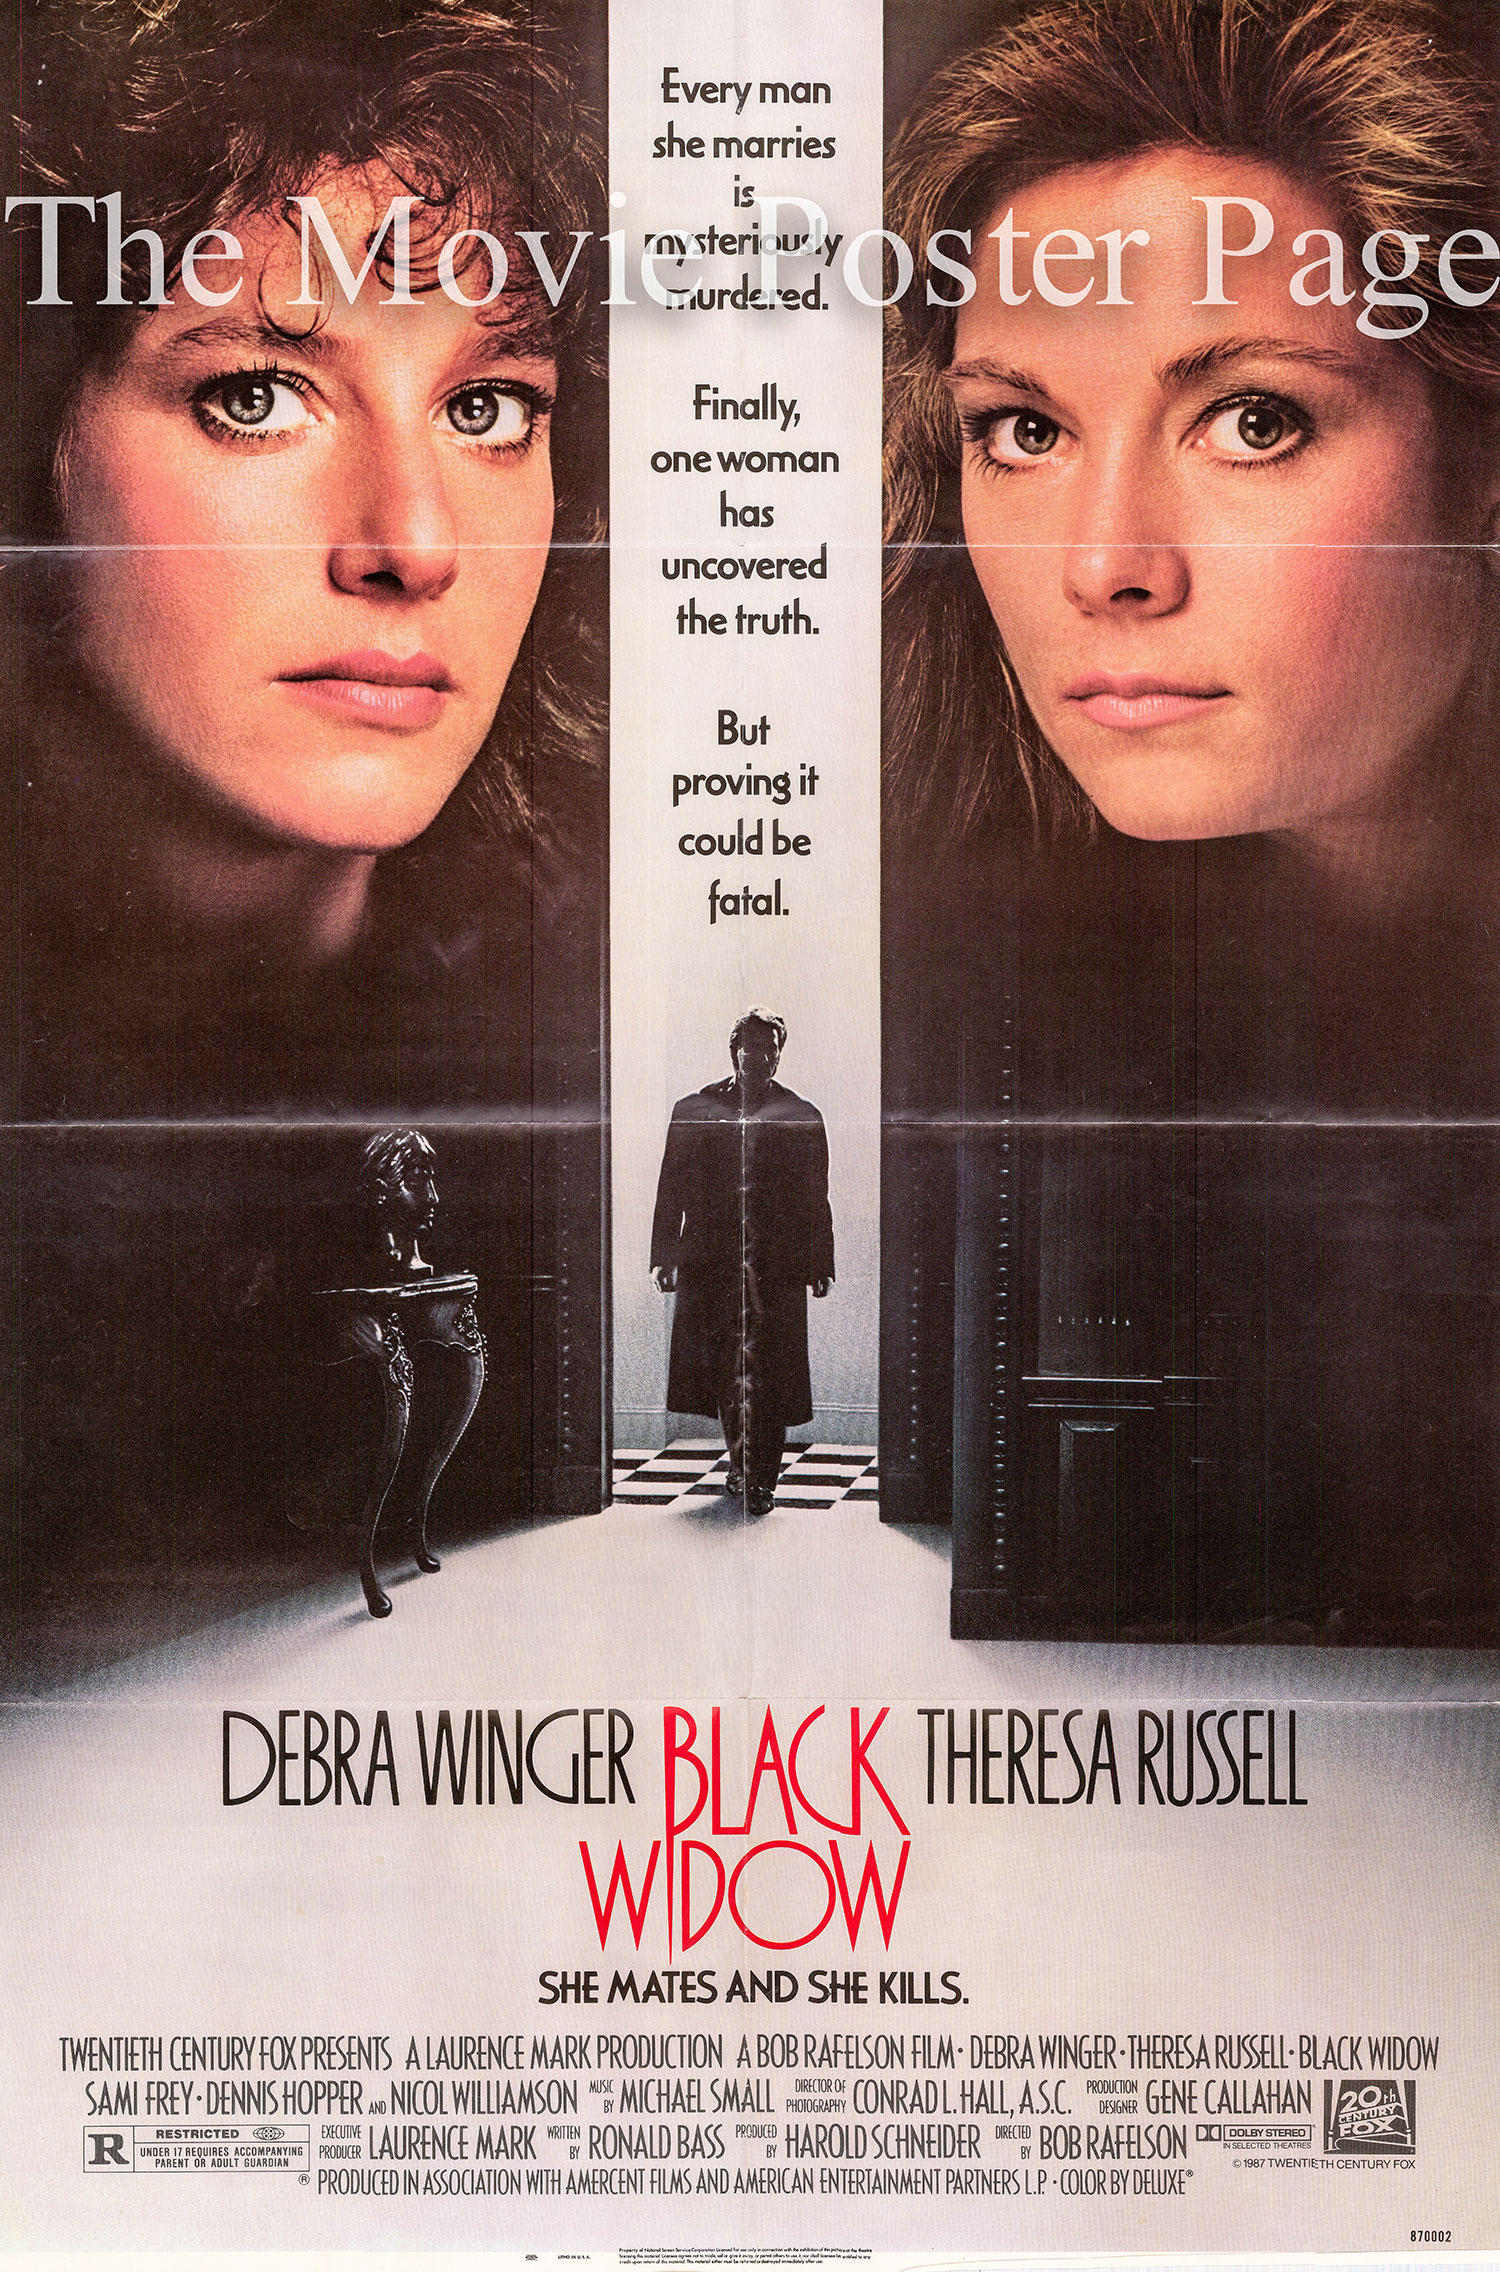 Pictured is a US one-sheet poster for the 1987 Bob Rafelson film Black Widow starring Debra Winger.